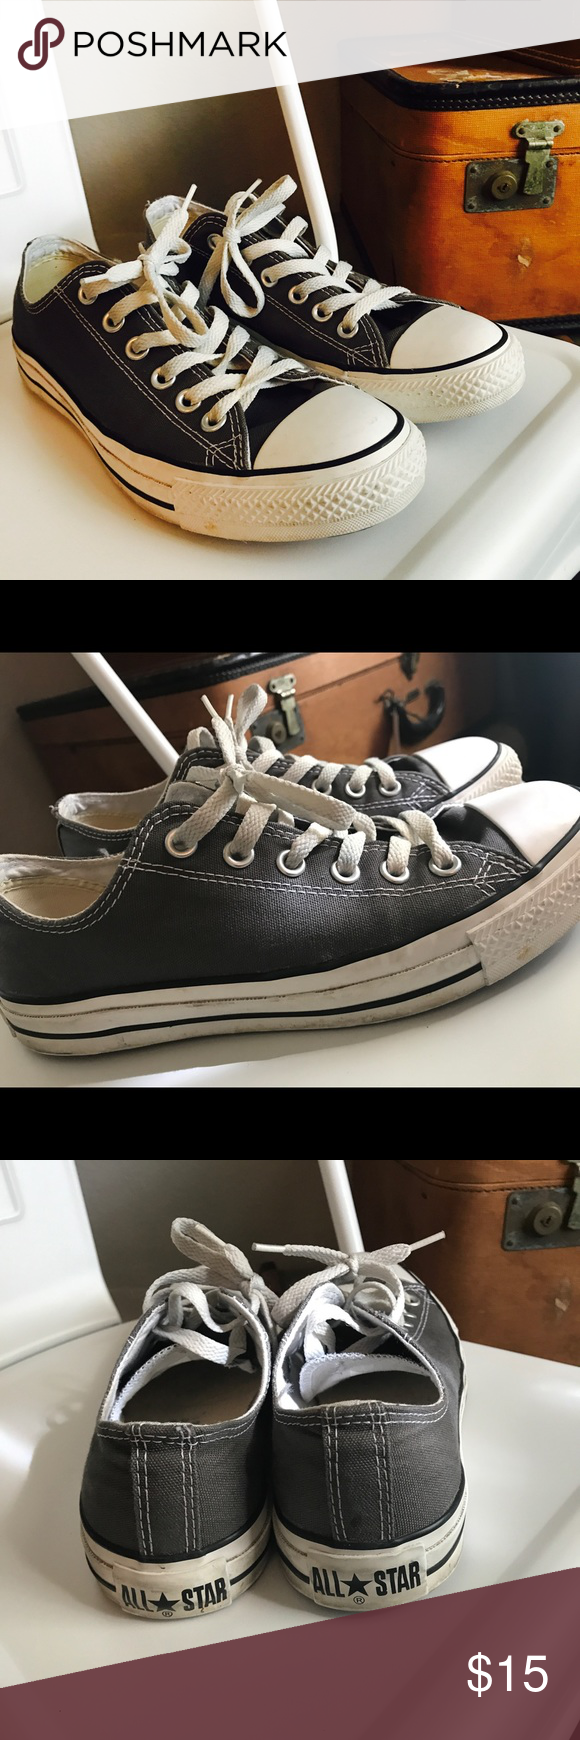 0e9d465c253 Worn several times but in great condition! Normal scuffing along rubber  bottoms. Men s size 6- fits women 8-8.5. Converse Shoes Sneakers